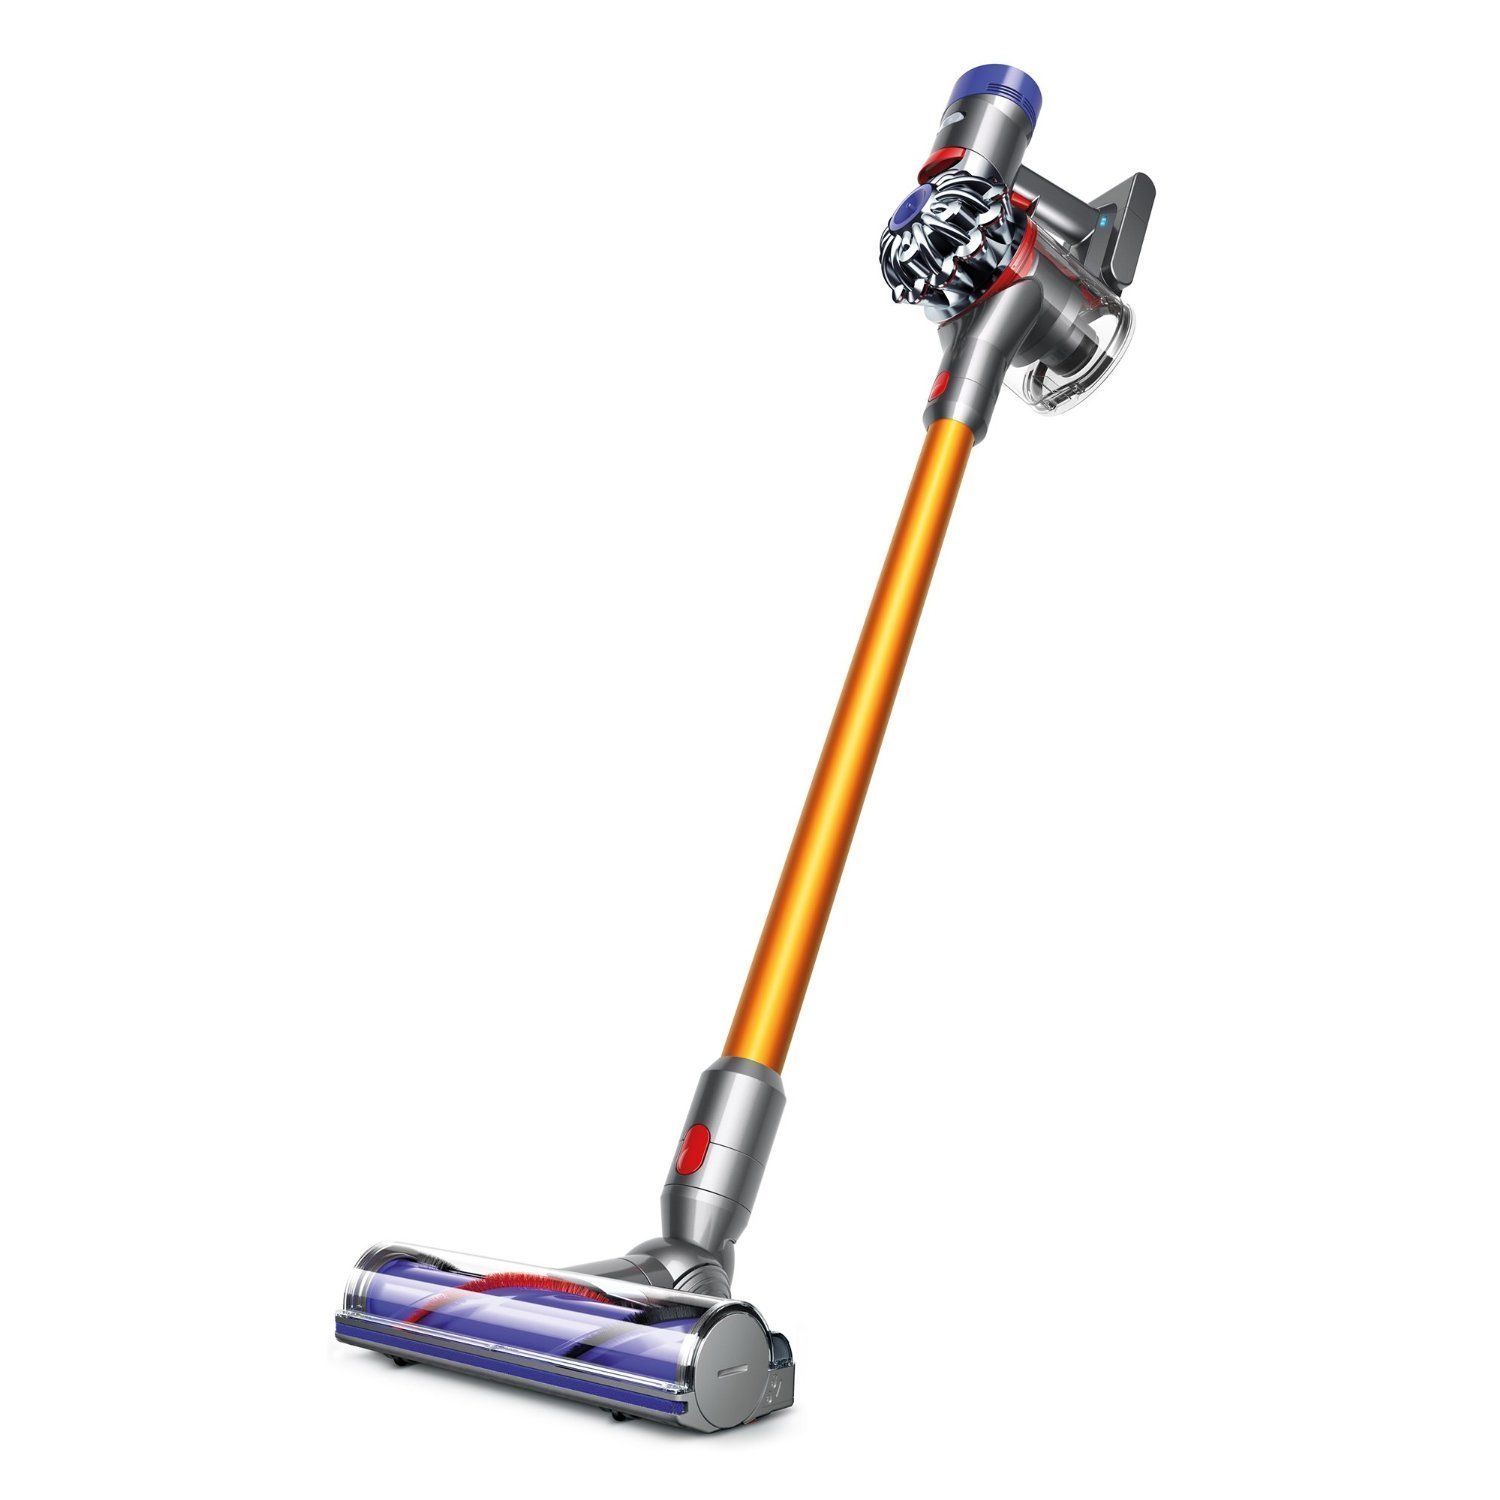 dyson v8 absolute cord free vacuum - Best Vacuum For Furniture